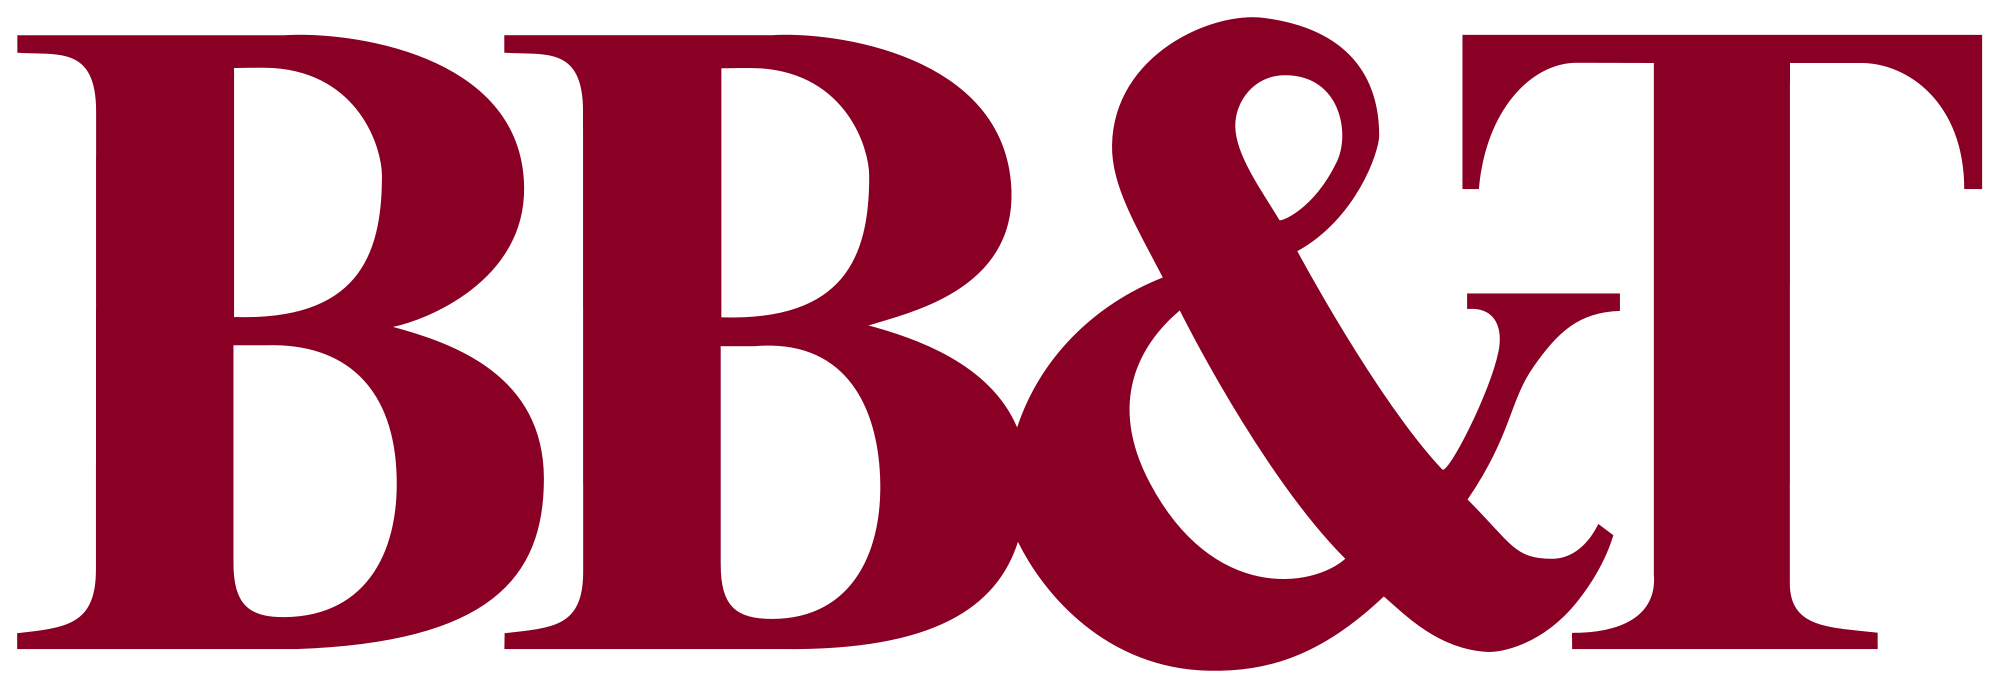 Bb T Bank Customer Care Banking Finance Logo Trust Company